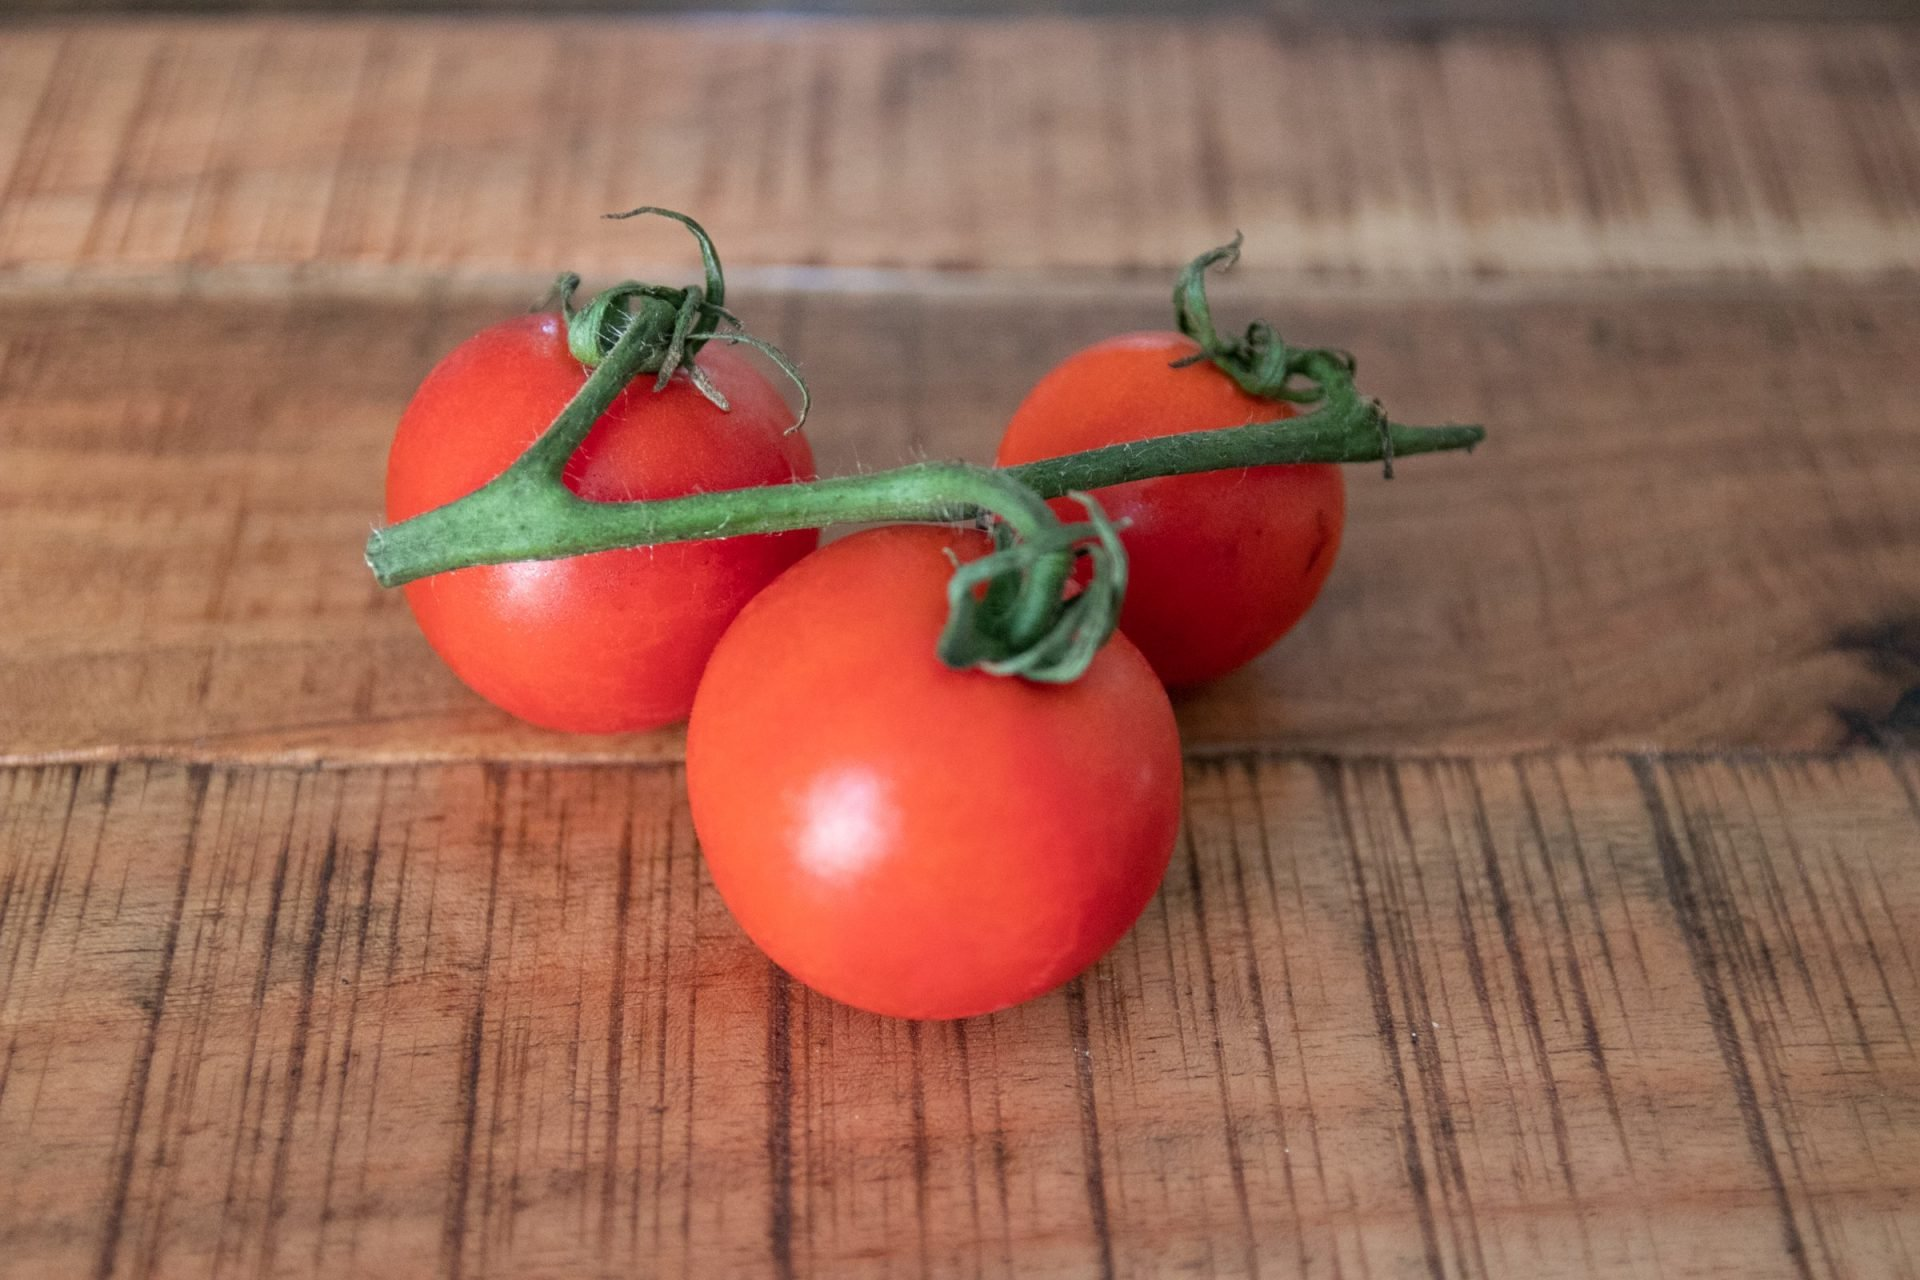 Three Tomatoes On Wooden Surface